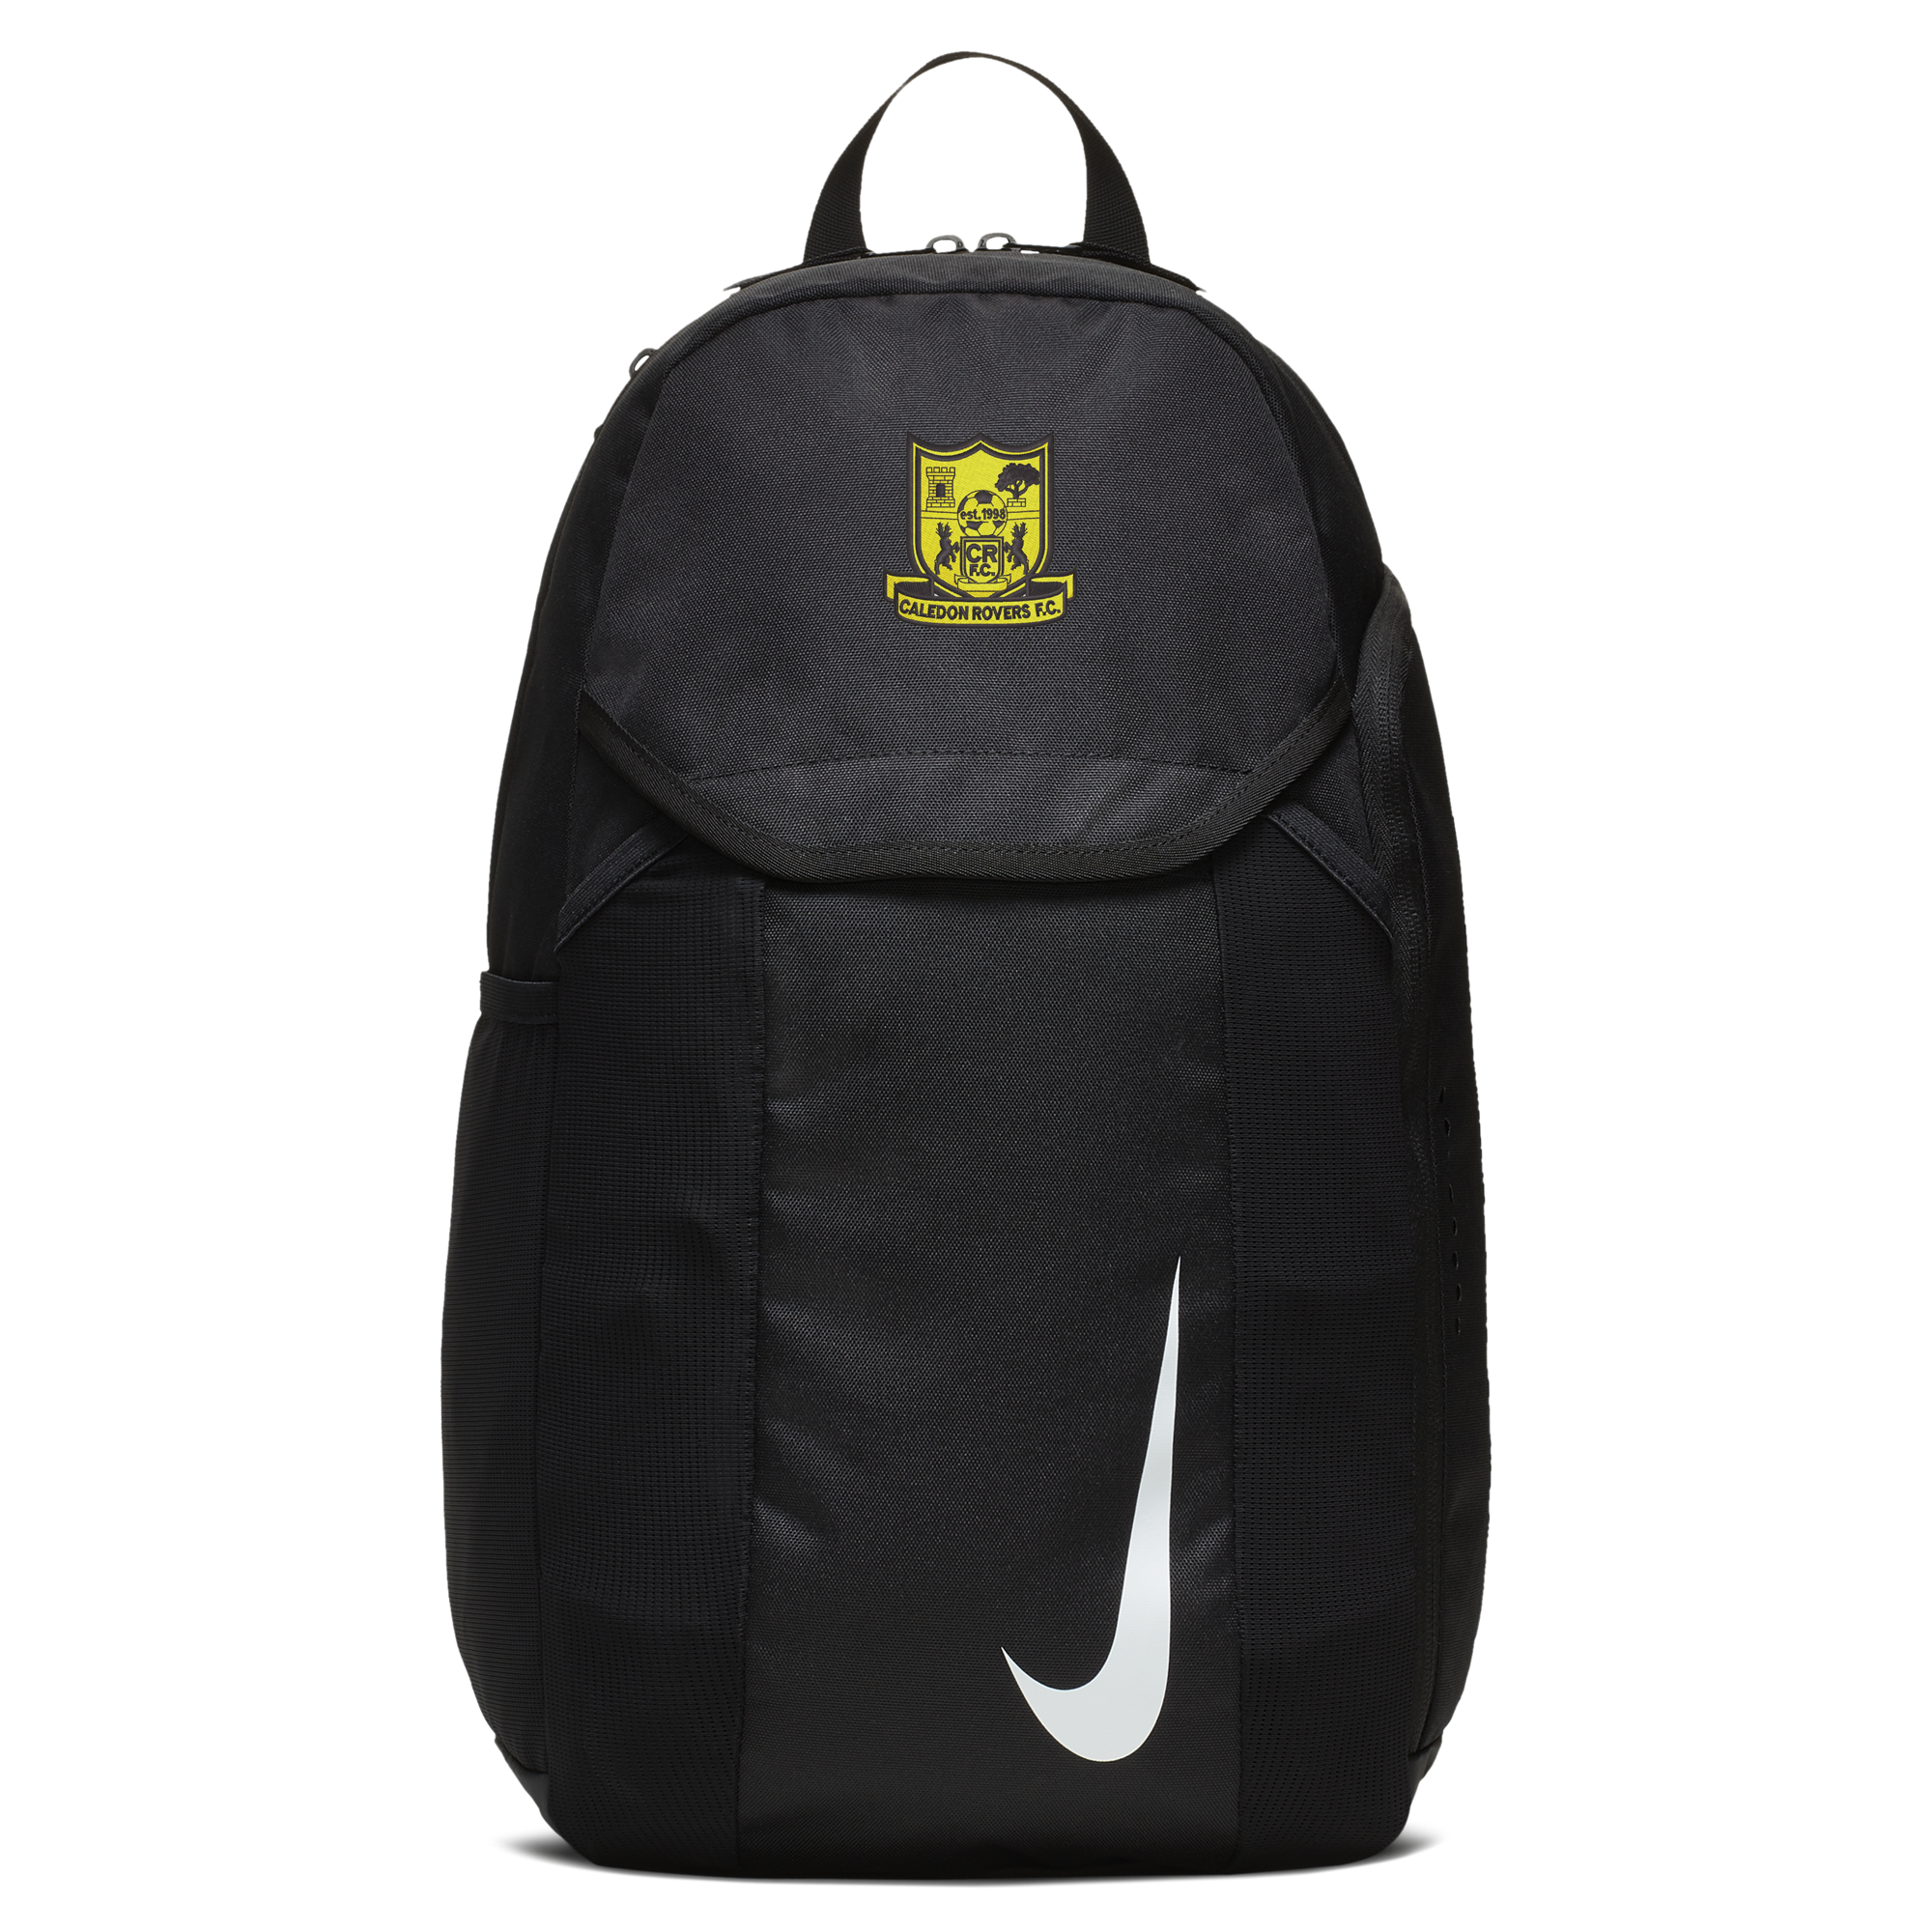 Caledon Rovers Fc backpack